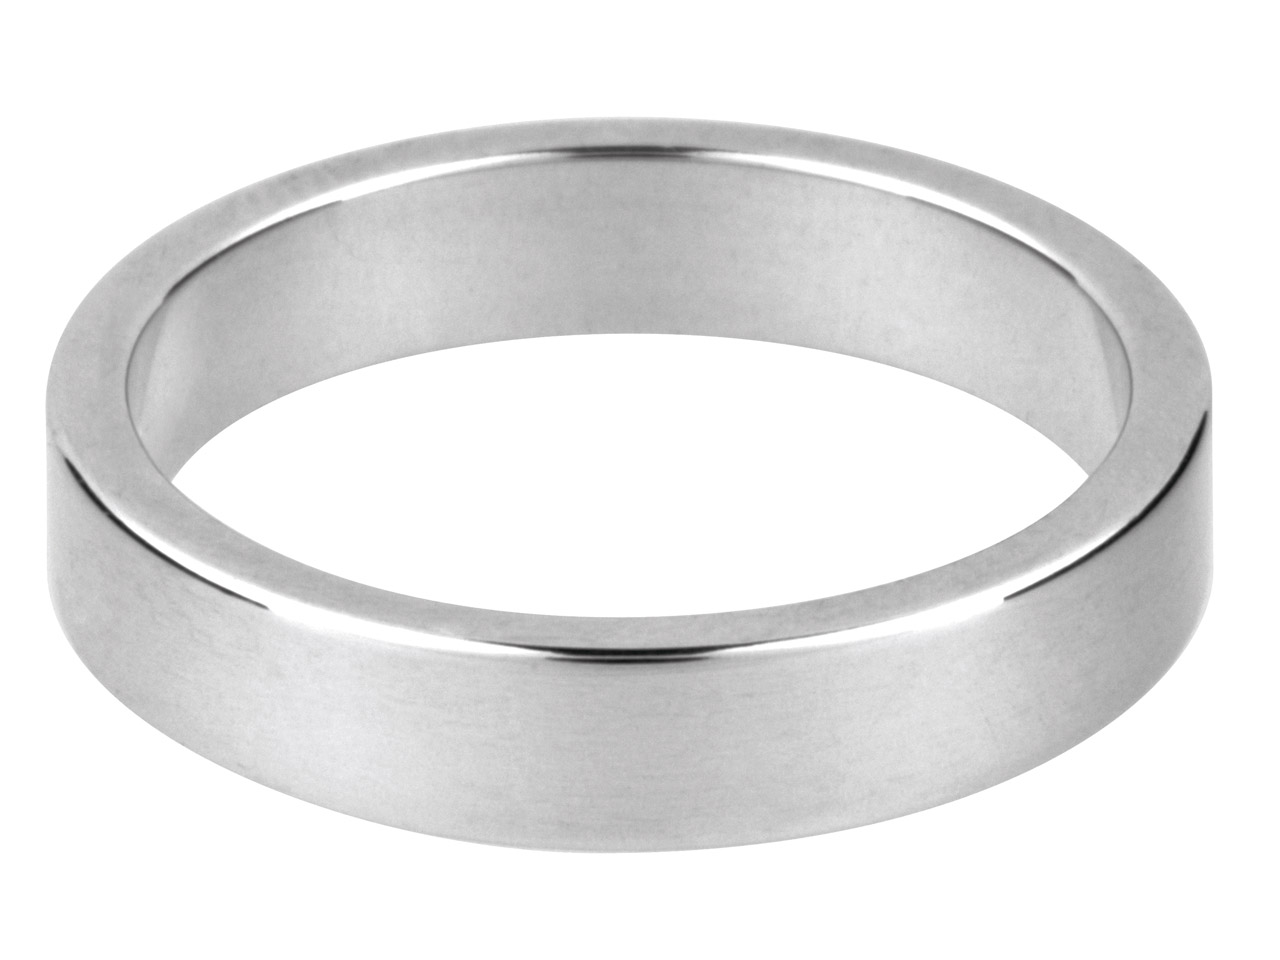 9ct White Flat Wedding Ring 4.0mm Q 4.0gms Medium Weight Hallmarked     Wall Thickness 1.26mm